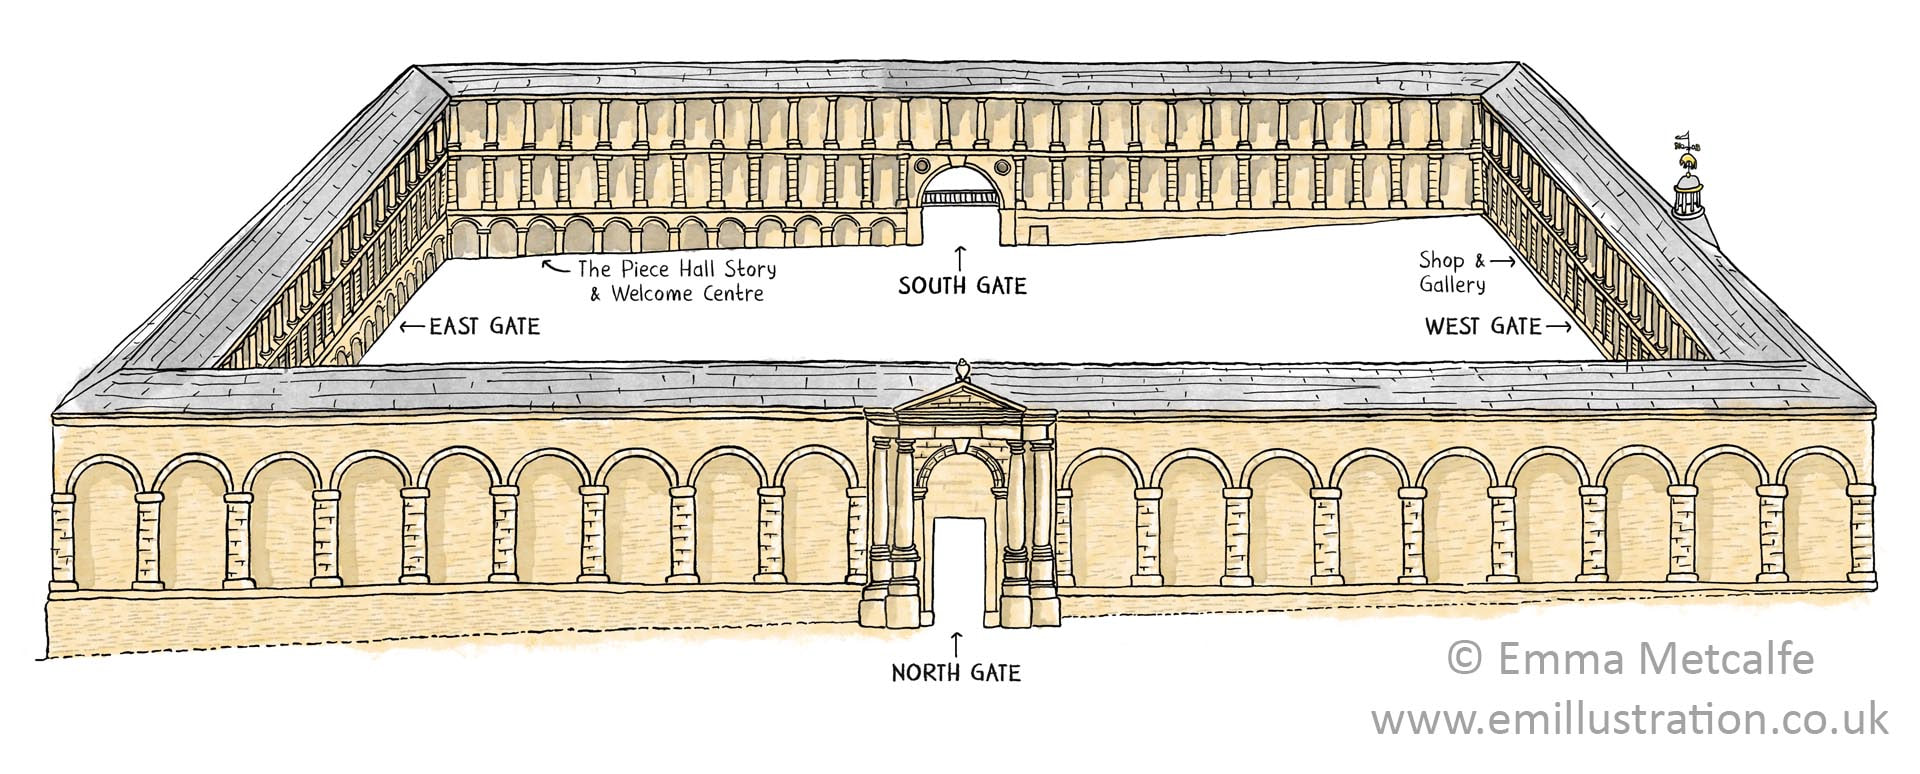 Illustration of Piece Hall historic building Halifax orientation map illustrated by Emma Metcalfe